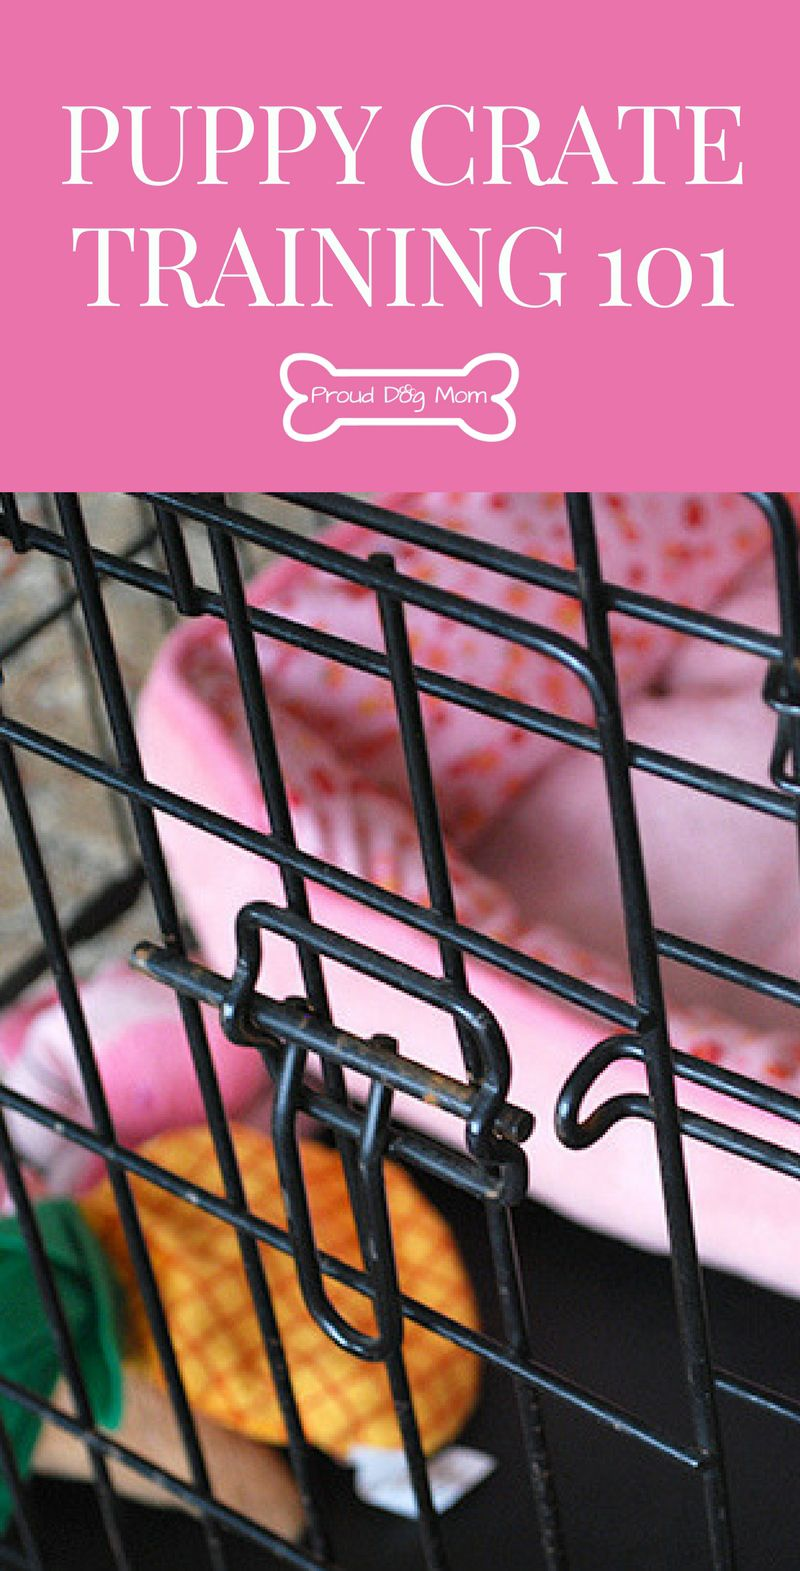 Crate Training 101 Puppy Training Tips Training Your Puppy